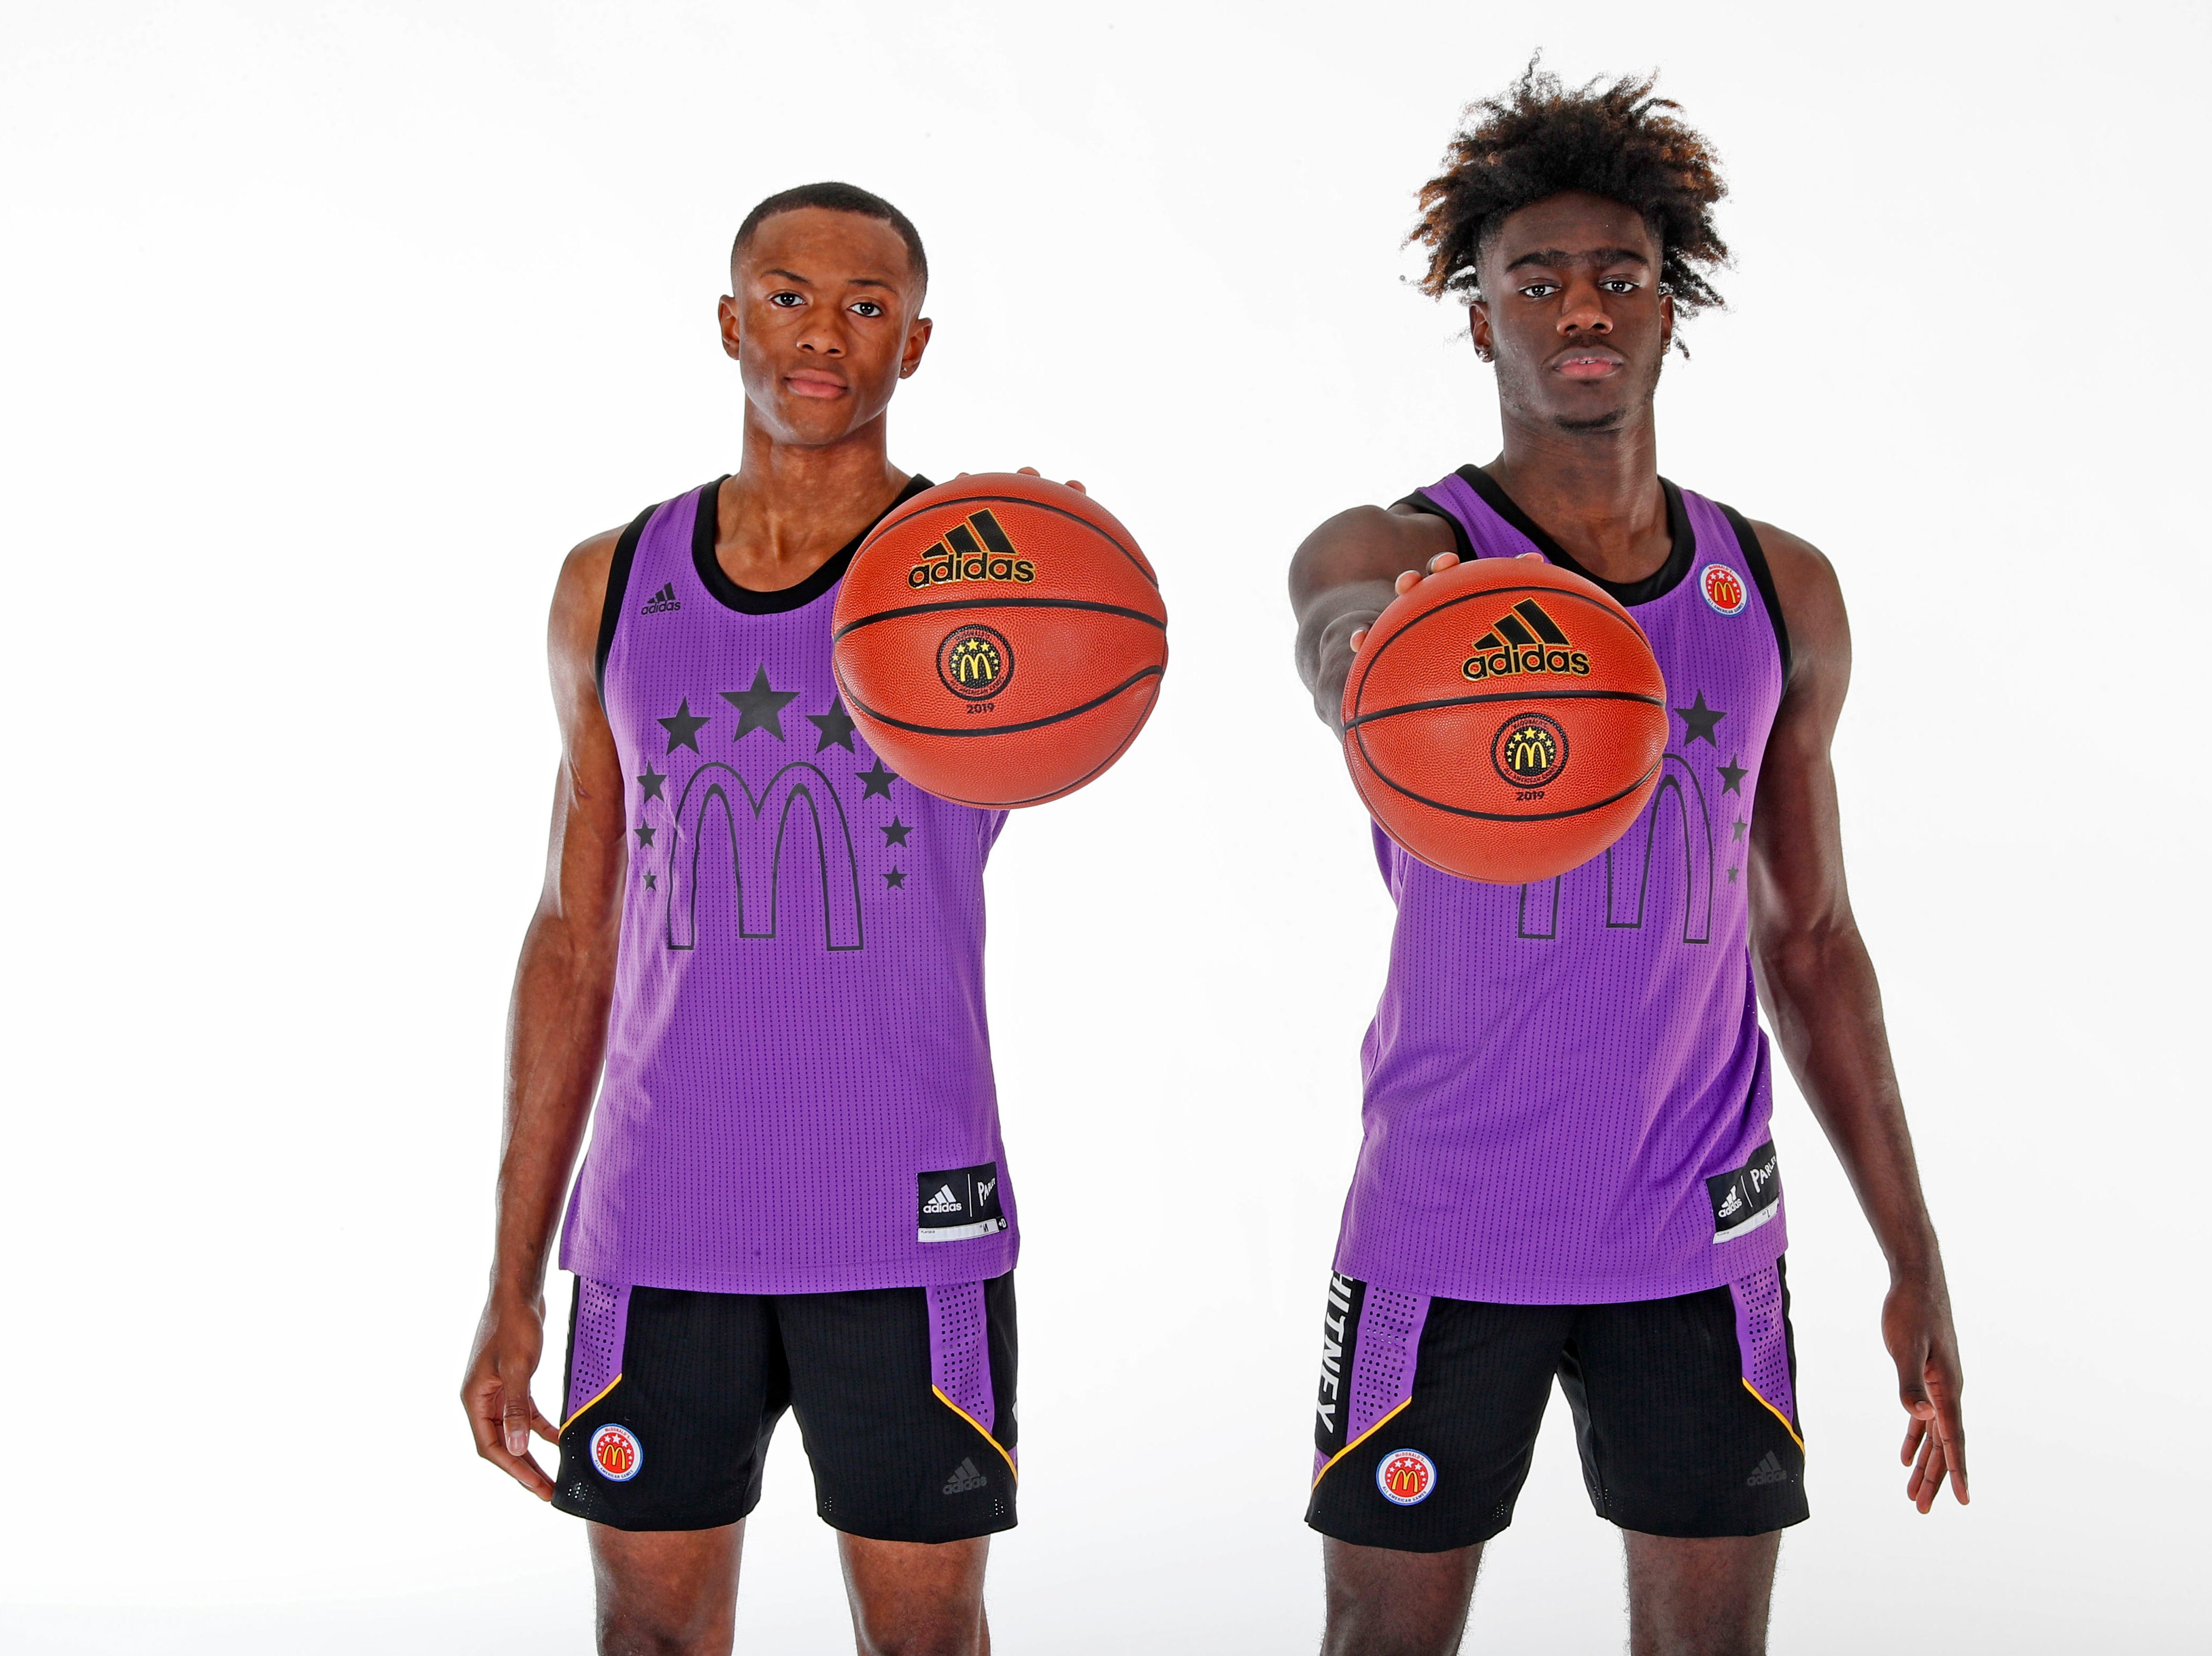 Mar 23, 2019; Atlanta, GA, USA; From left to right McDonalds High School All American forward Kahlil Whitney (2) and guard Scottie Lewis (23) who are both from the state of New Jersey pose for a group photo on portrait day at the Hilton Hotel Crystal Ball Room before the 2019 McDonalds All American Game. Mandatory Credit: Brian Spurlock-McDonalds